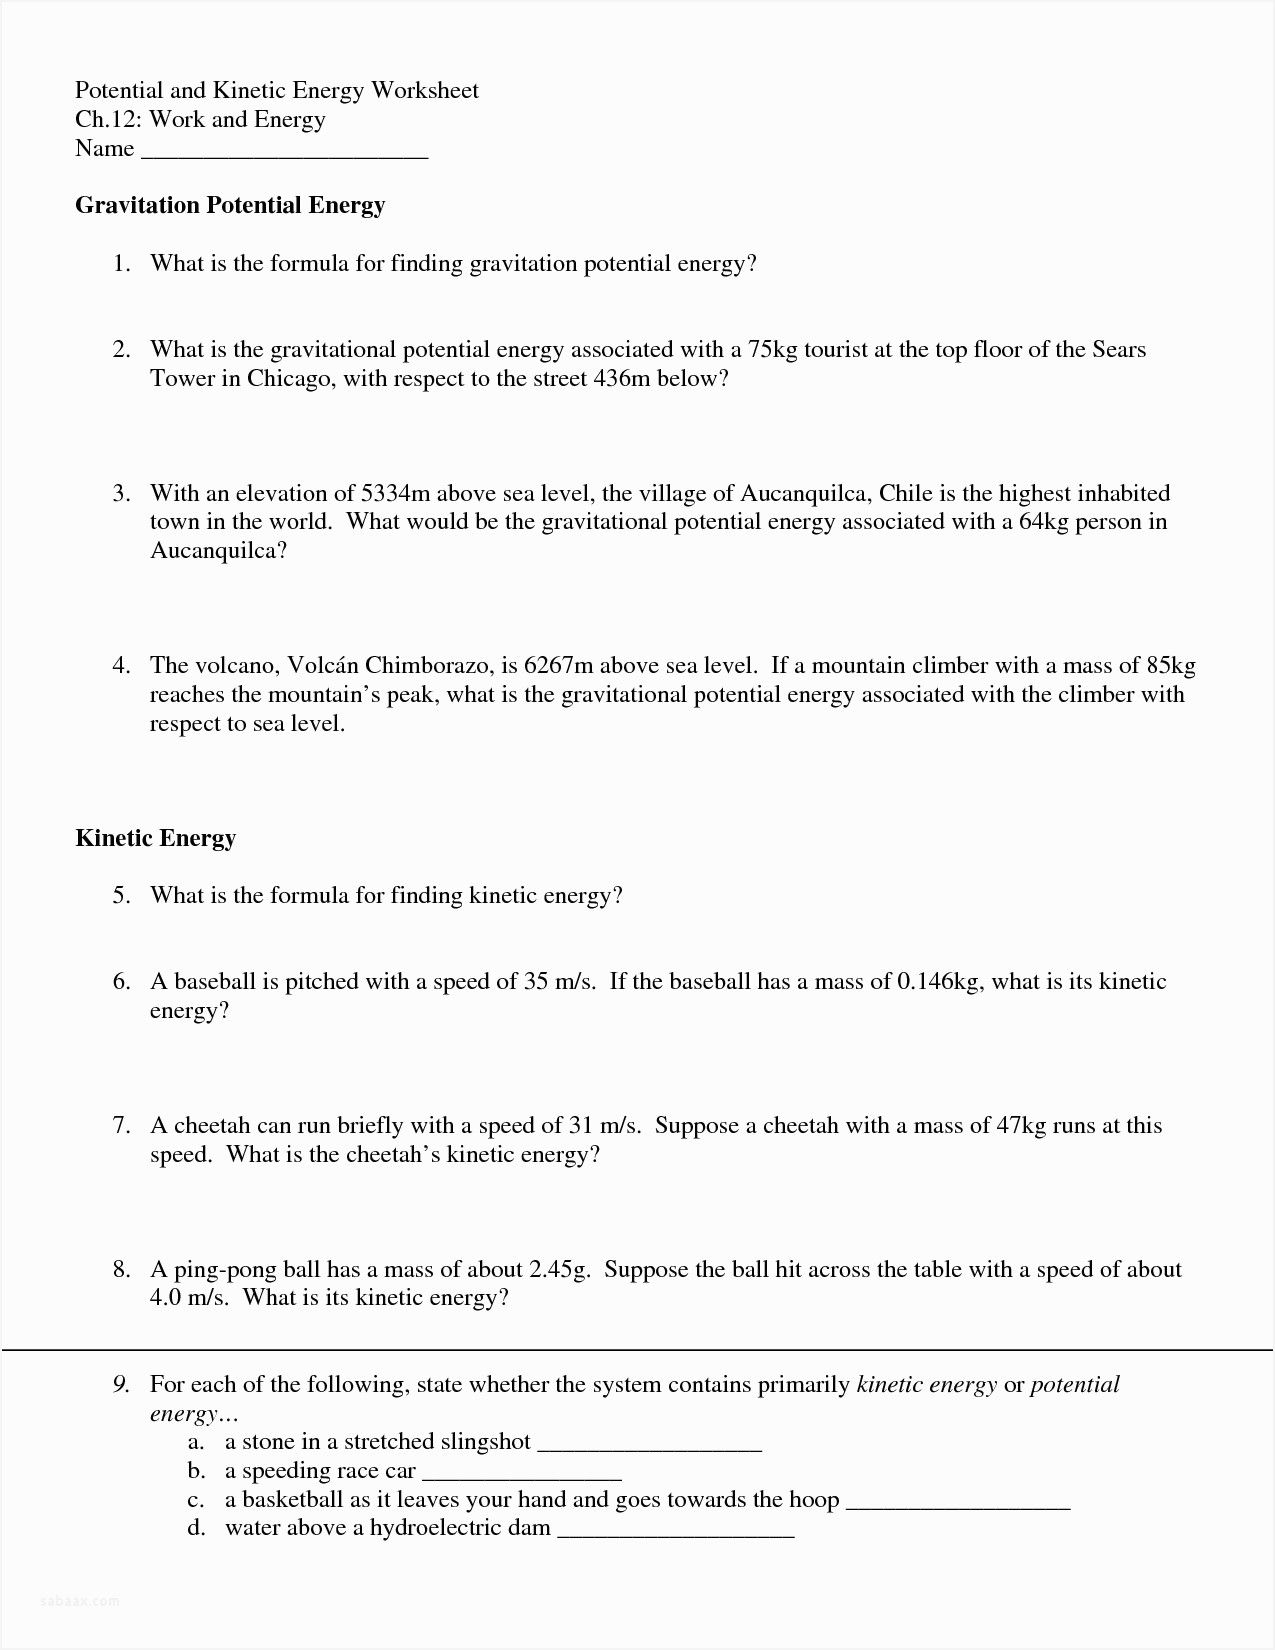 17 Introduction to Energy Worksheet Answers SiInc.com | Best ...